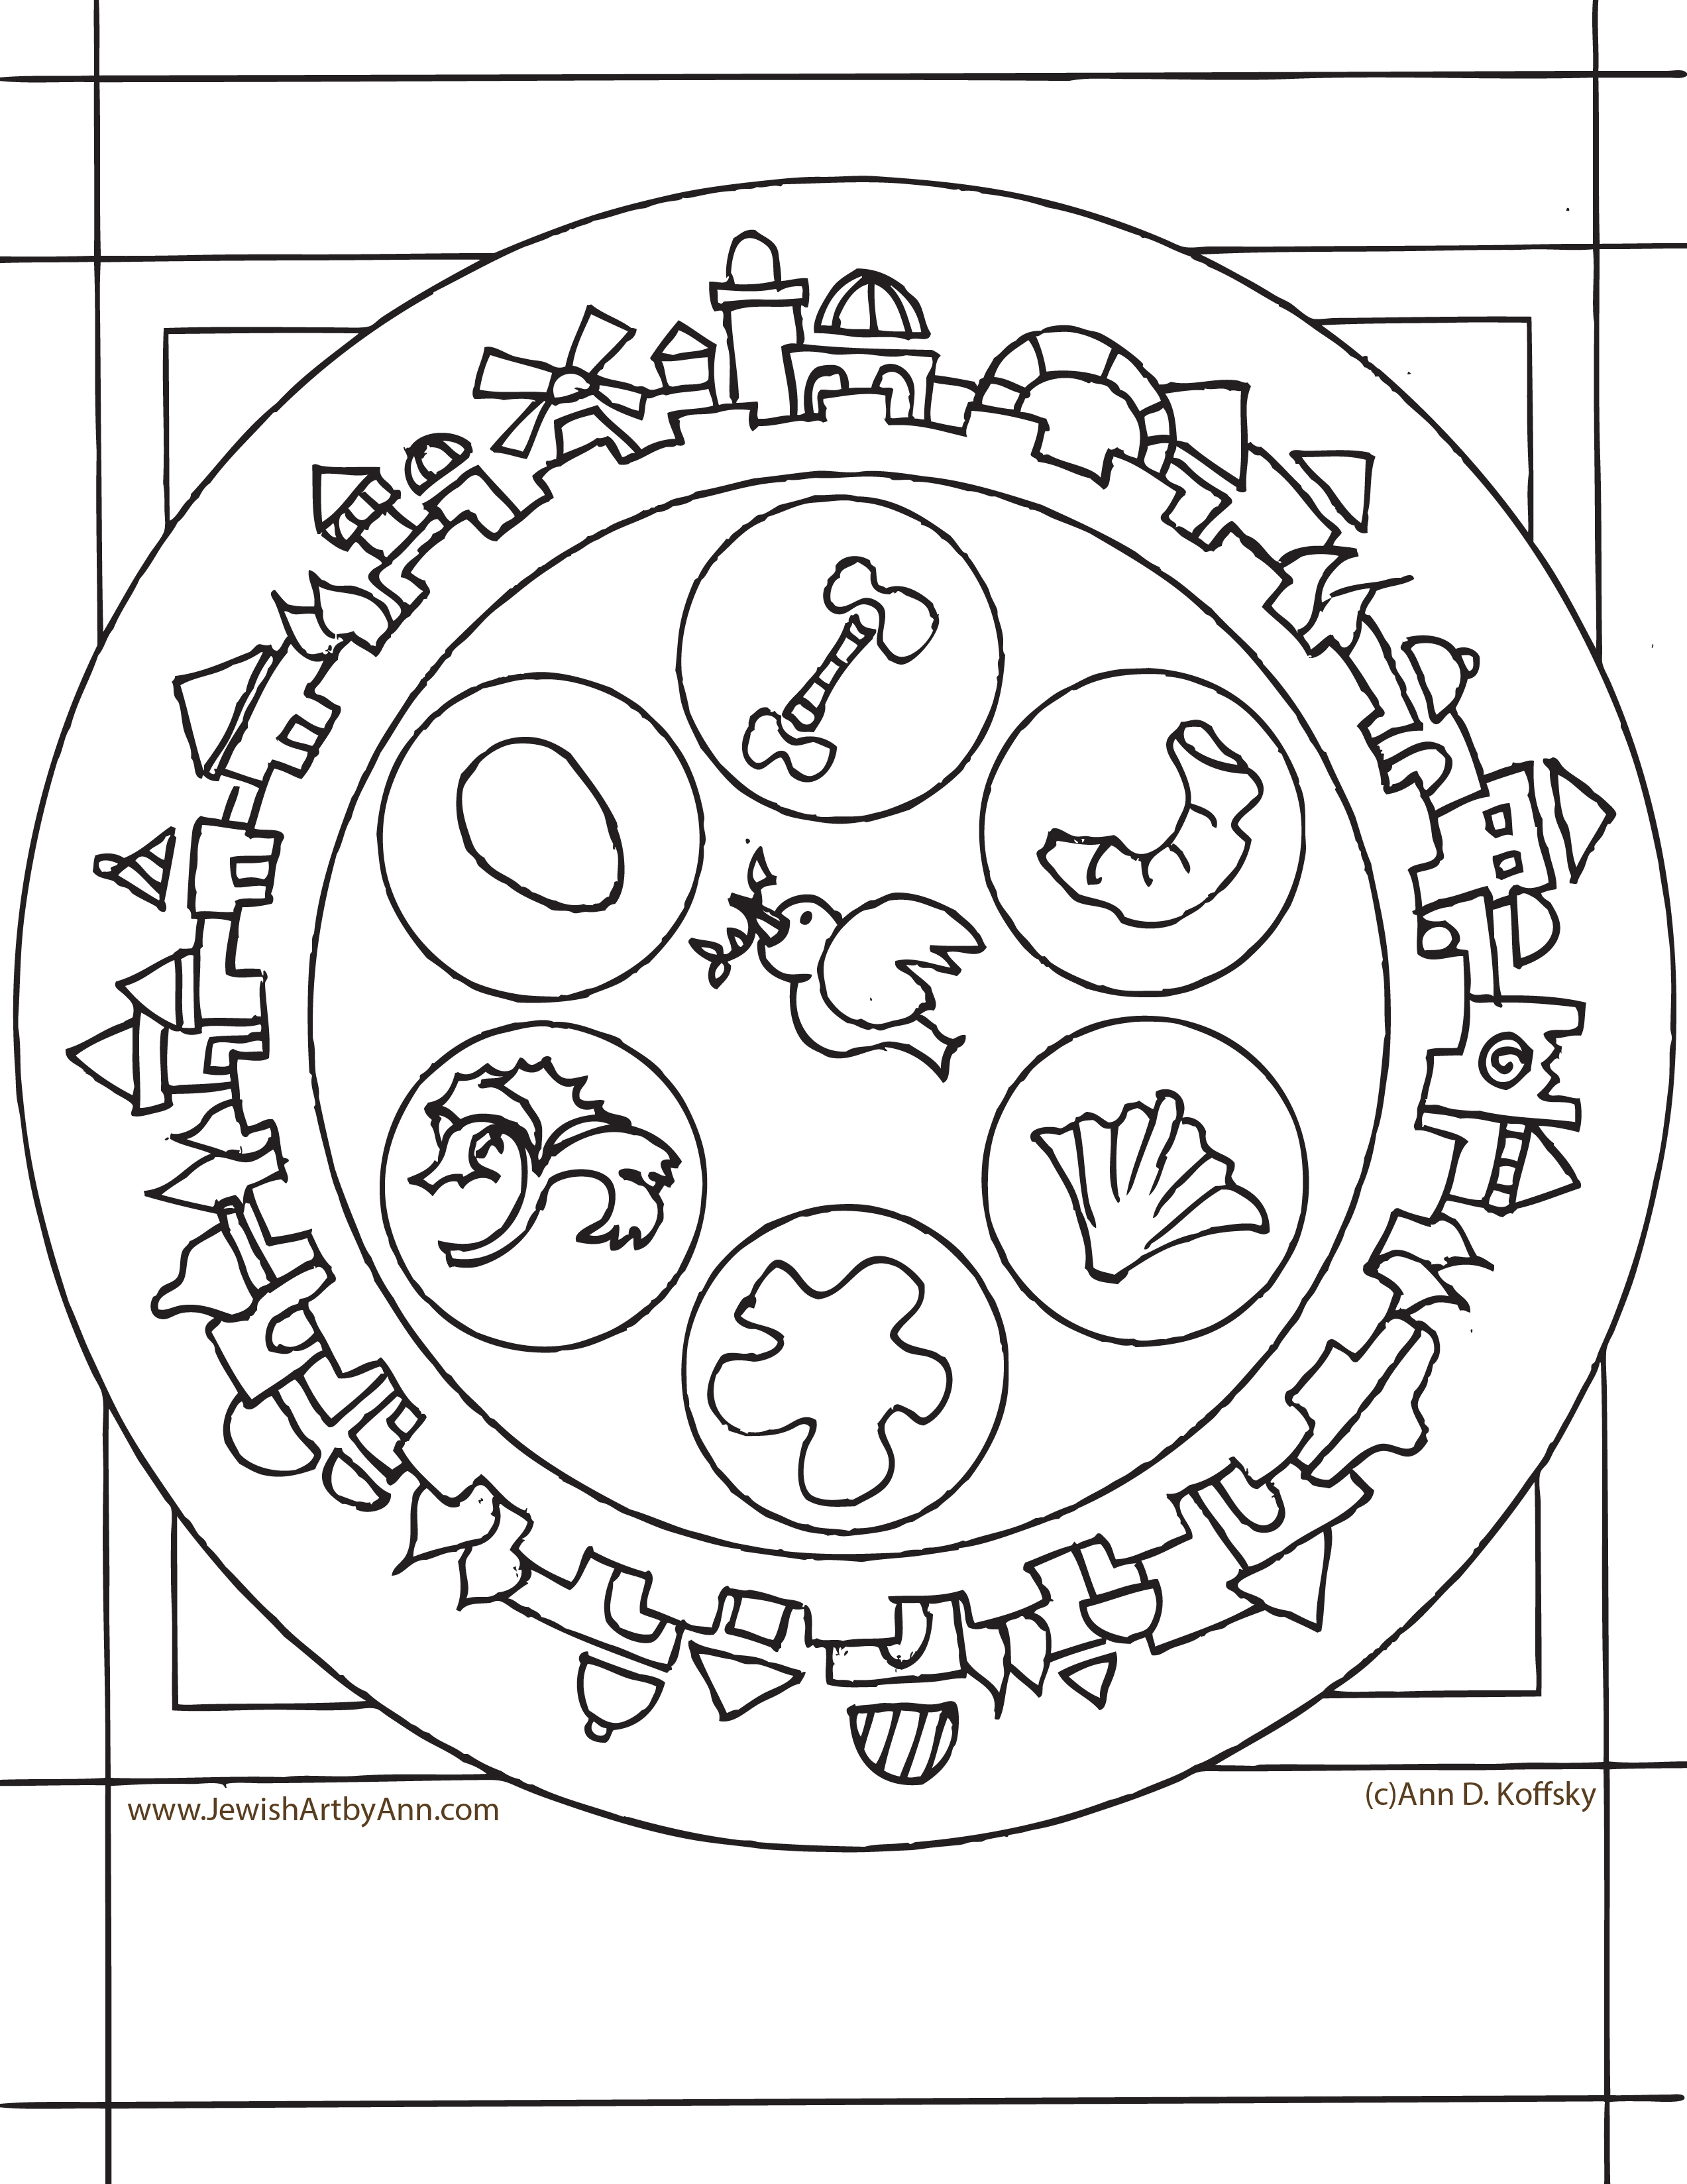 Passover Coloring Page | Ann D. Koffsky